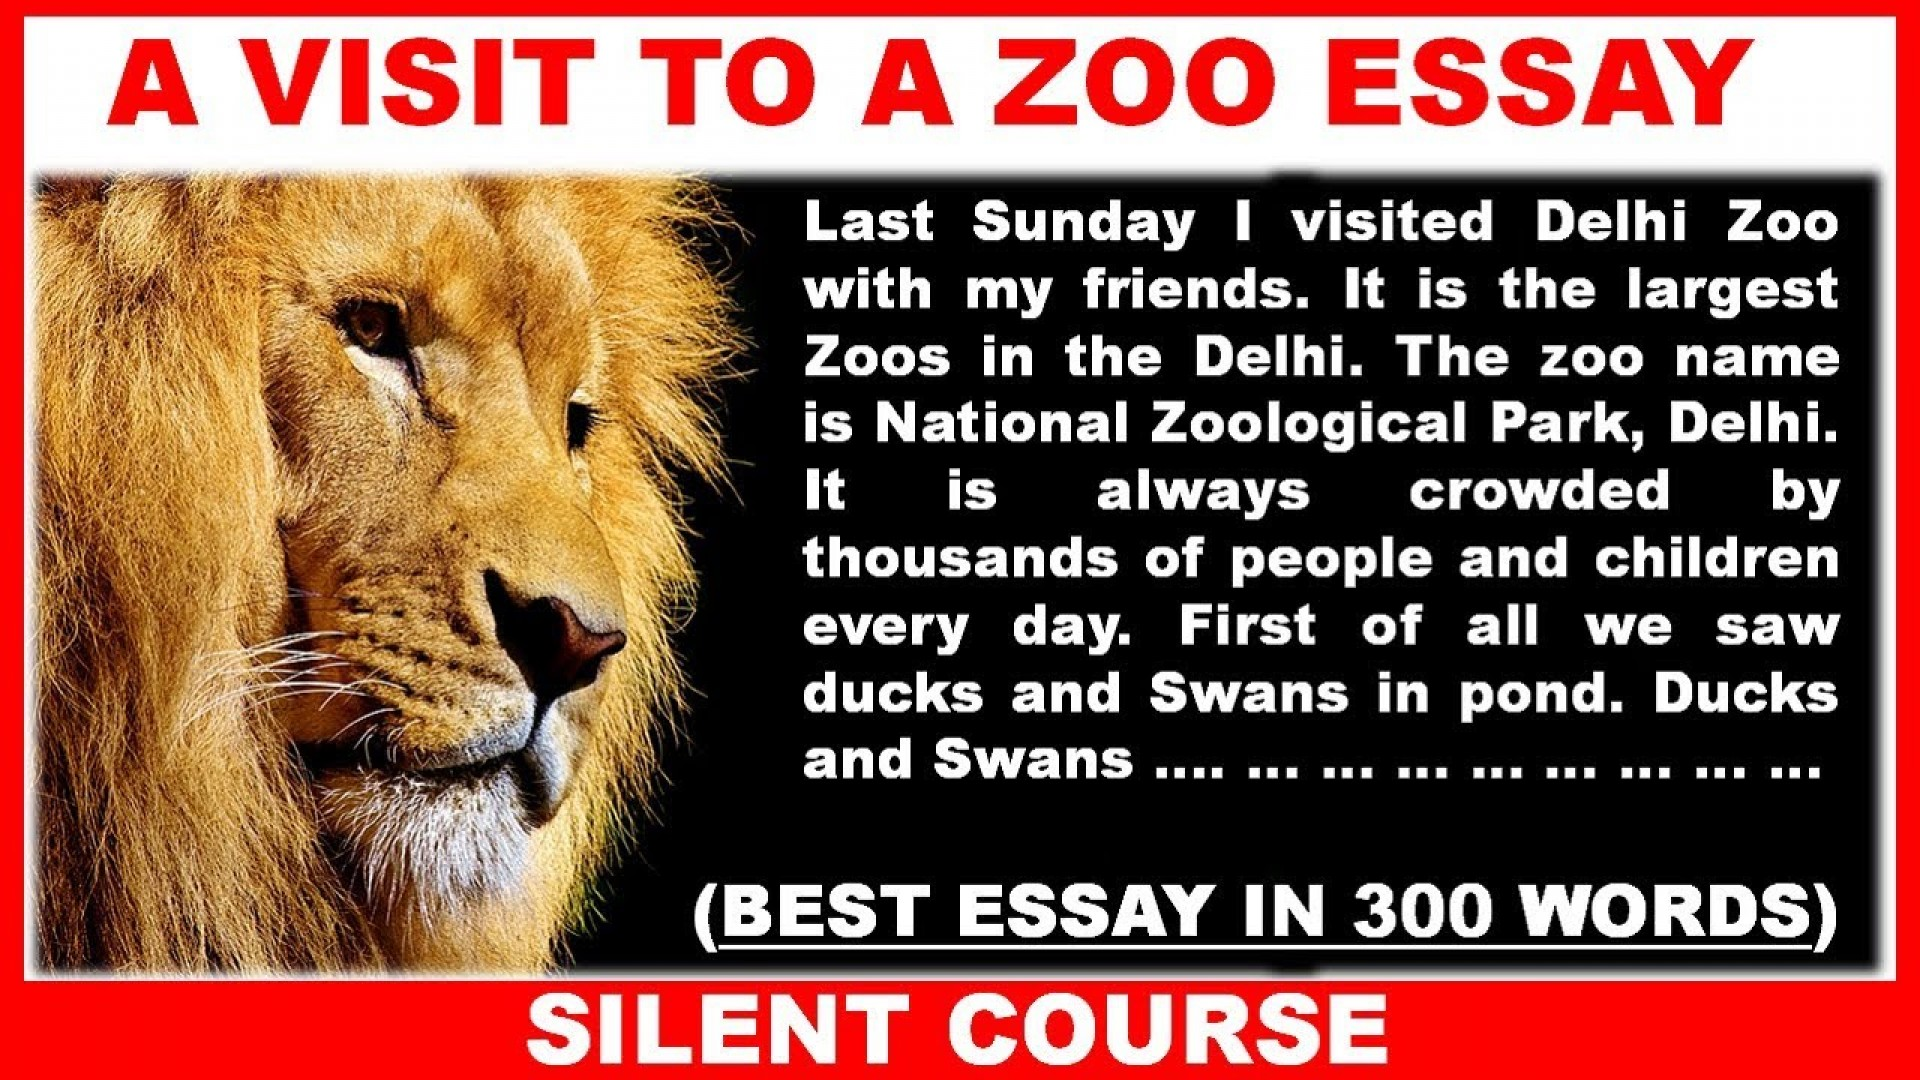 001 Essay Example Maxresdefault On Marvelous Zoo In English Short Argumentative Why Zoos Should Be Banned 1920